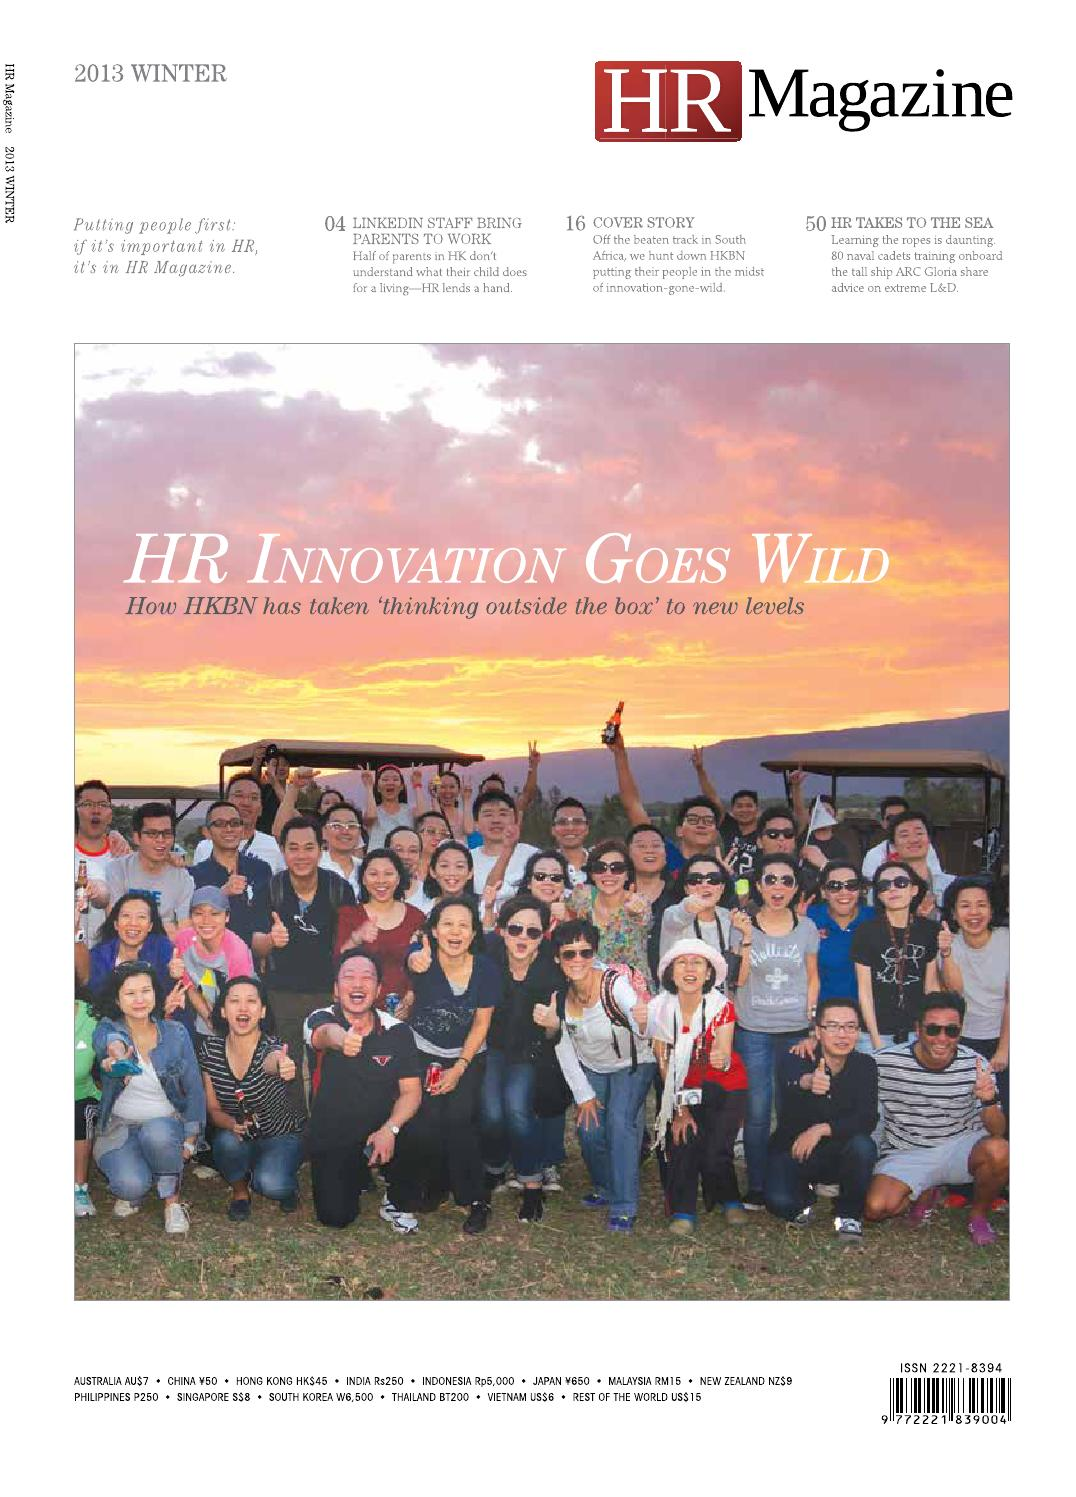 HR Magazine Winter Issue 2013 by HR Magazine - issuu